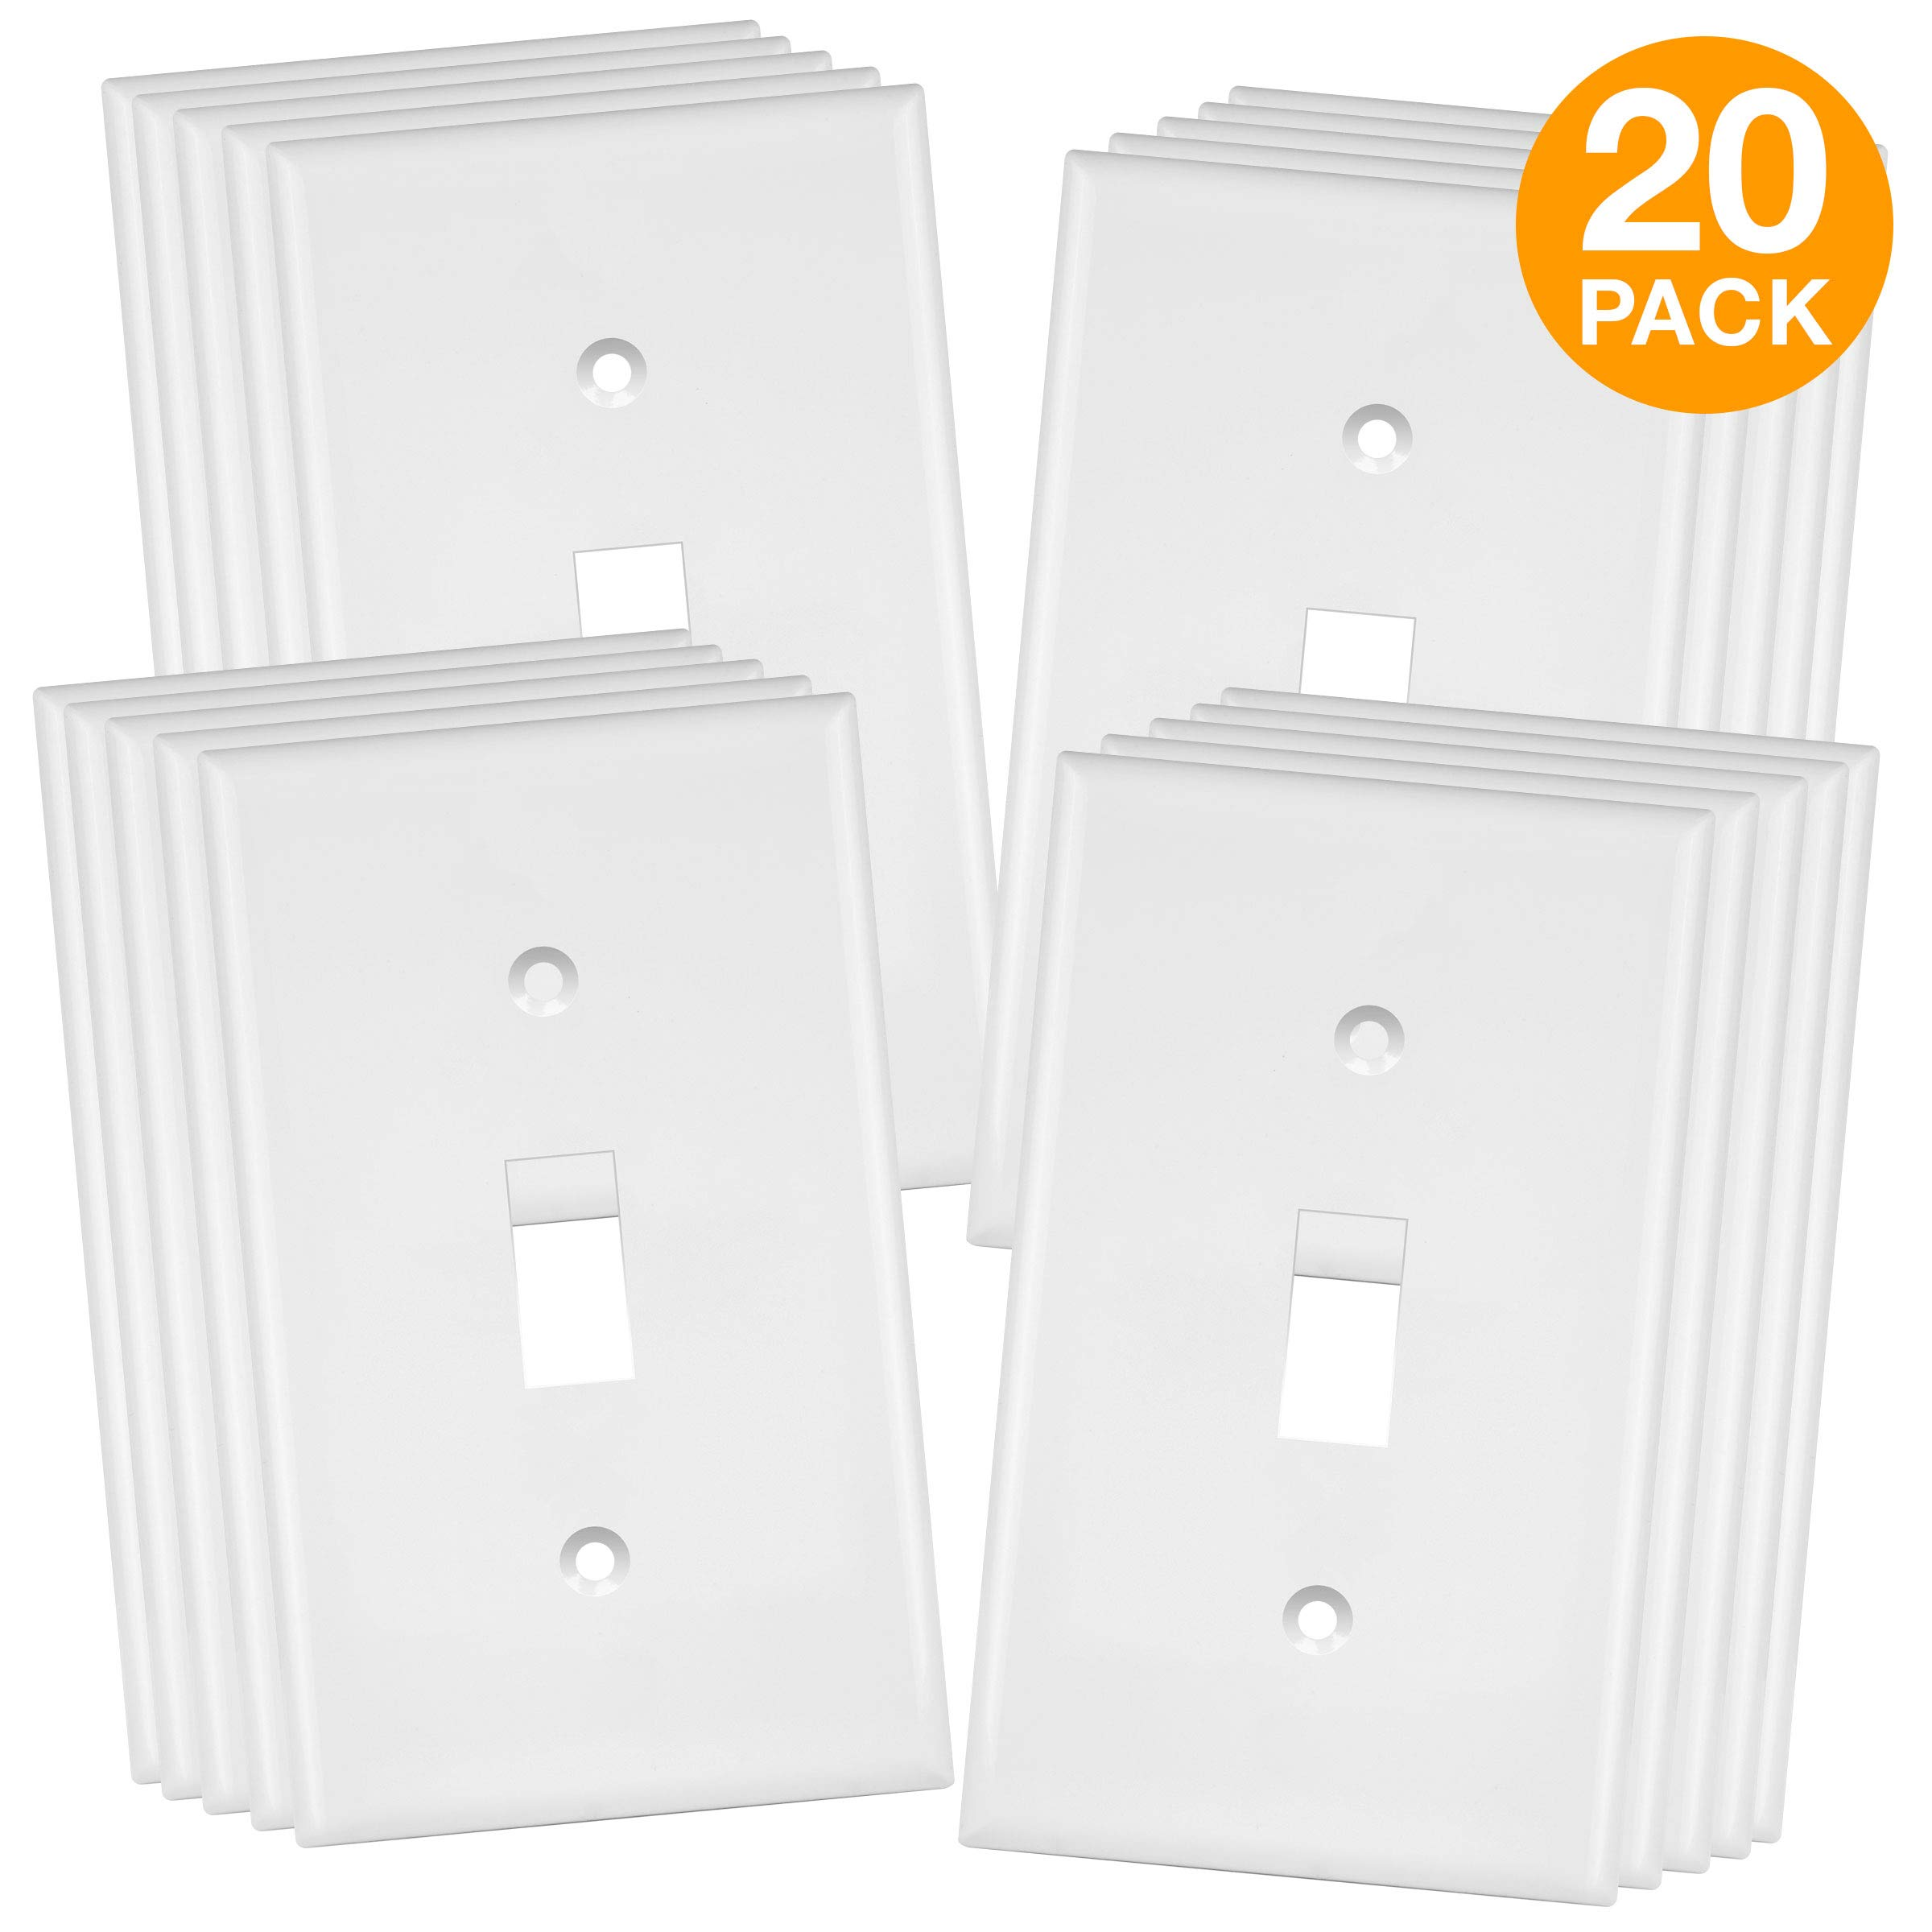 ENERLITES Toggle Light Switch Wall Plate, Mid-Size 1-Gang 4.88'' x 3.11'', Unbreakable Polycarbonate Thermoplastic, UL Listed, 8811M-W-20PCS, White (20 Pack)